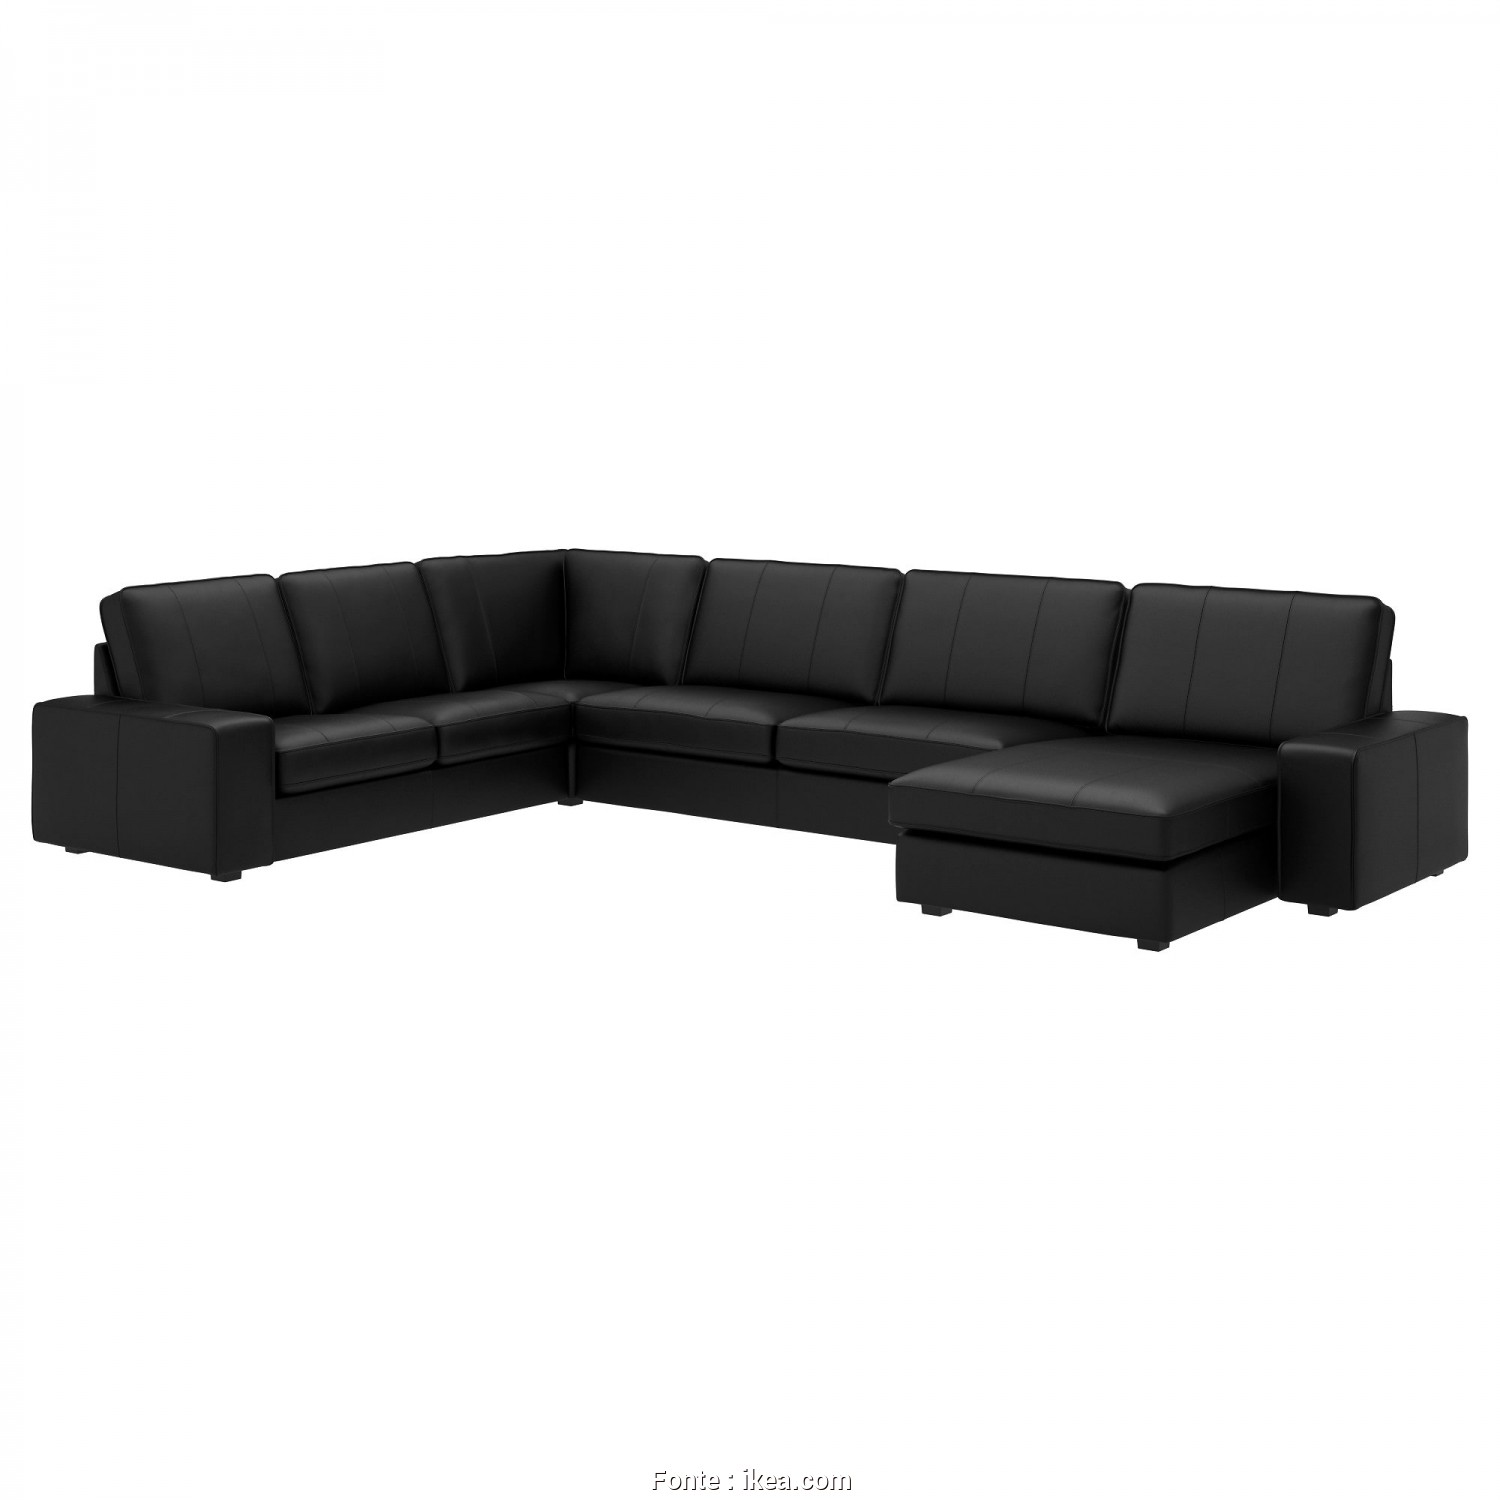 Ikea Divano Memory, Amabile IKEA KIVIK Corner Sofa, 6-Seat 10 Year Guarantee. Read About, Terms